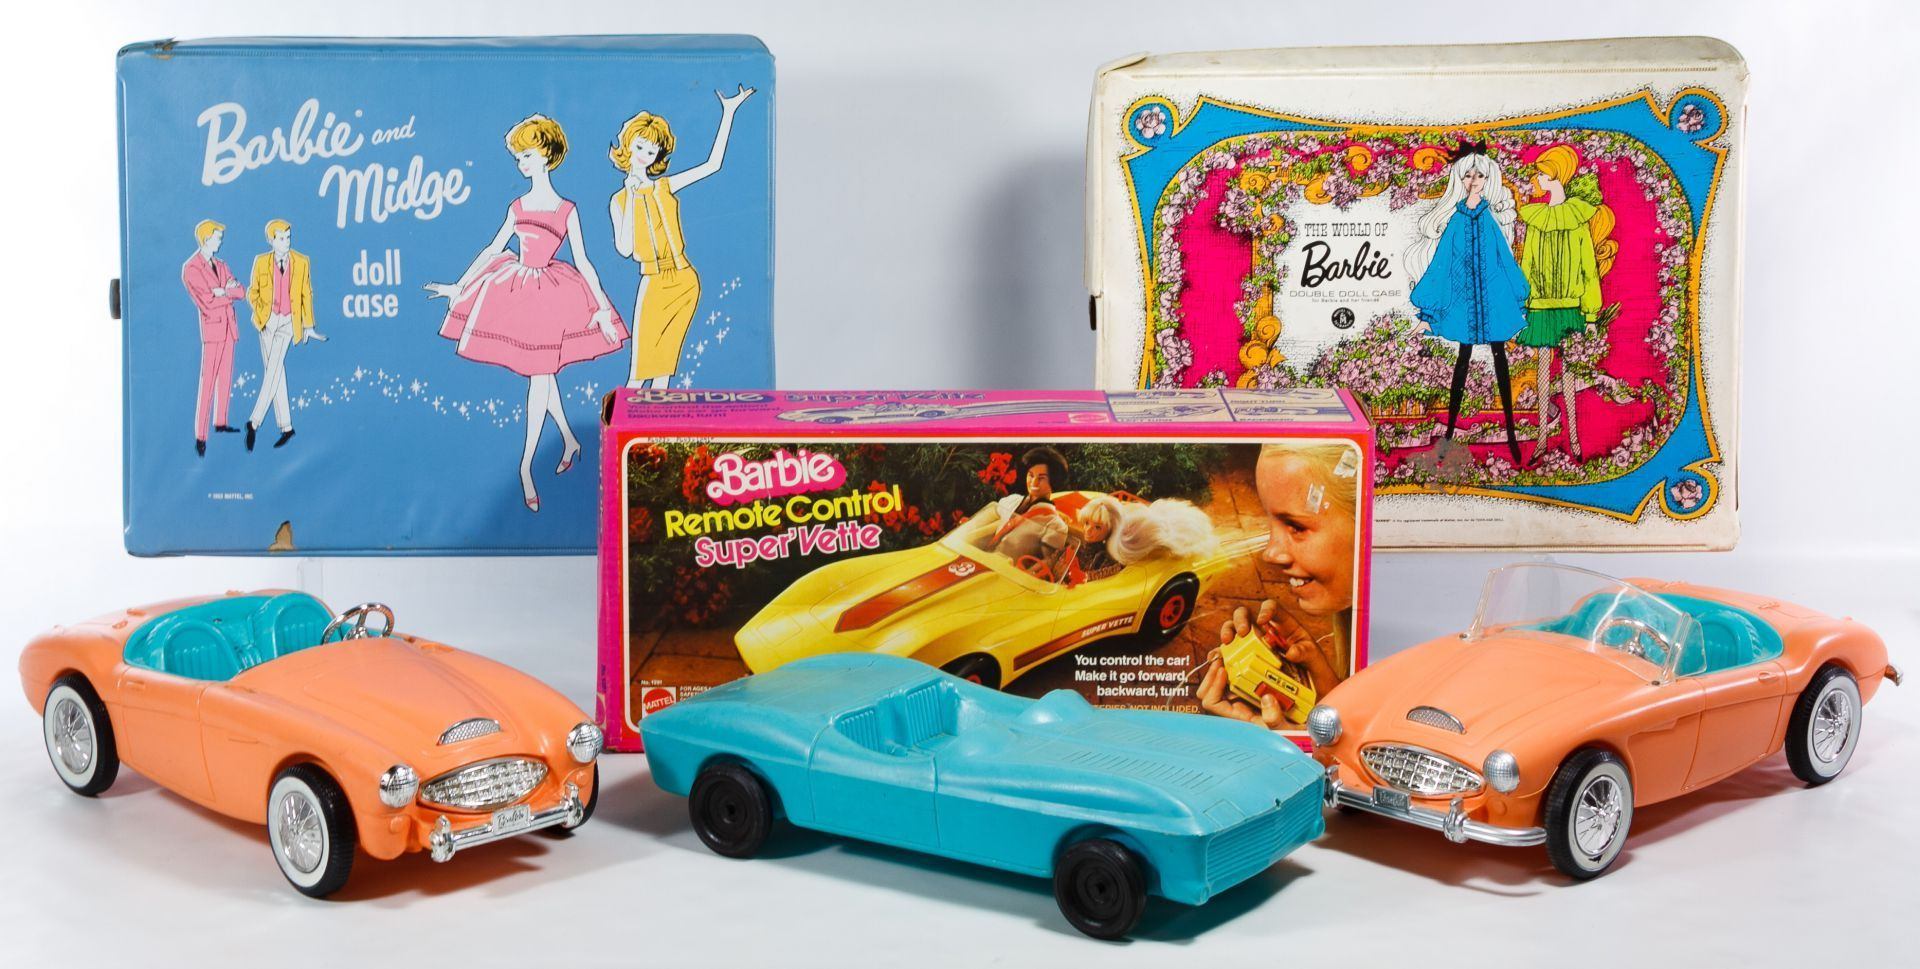 Lot 608: Mattel Barbie Car and Wardrobe Case Assortment; Including a 1963 Barbie and Midge case, a 1968 World of Barbie case, a 1979 Barbie Remote Control Super'Vette car in original box, two Barbie cars and an Irwin vinyl car #barbiecars Lot 608: Mattel Barbie Car and Wardrobe Case Assortment; Including a 1963 Barbie and Midge case, a 1968 World of Barbie case, a 1979 Barbie Remote Control Super'Vette car in original box, two Barbie cars and an Irwin vinyl car #barbiecars